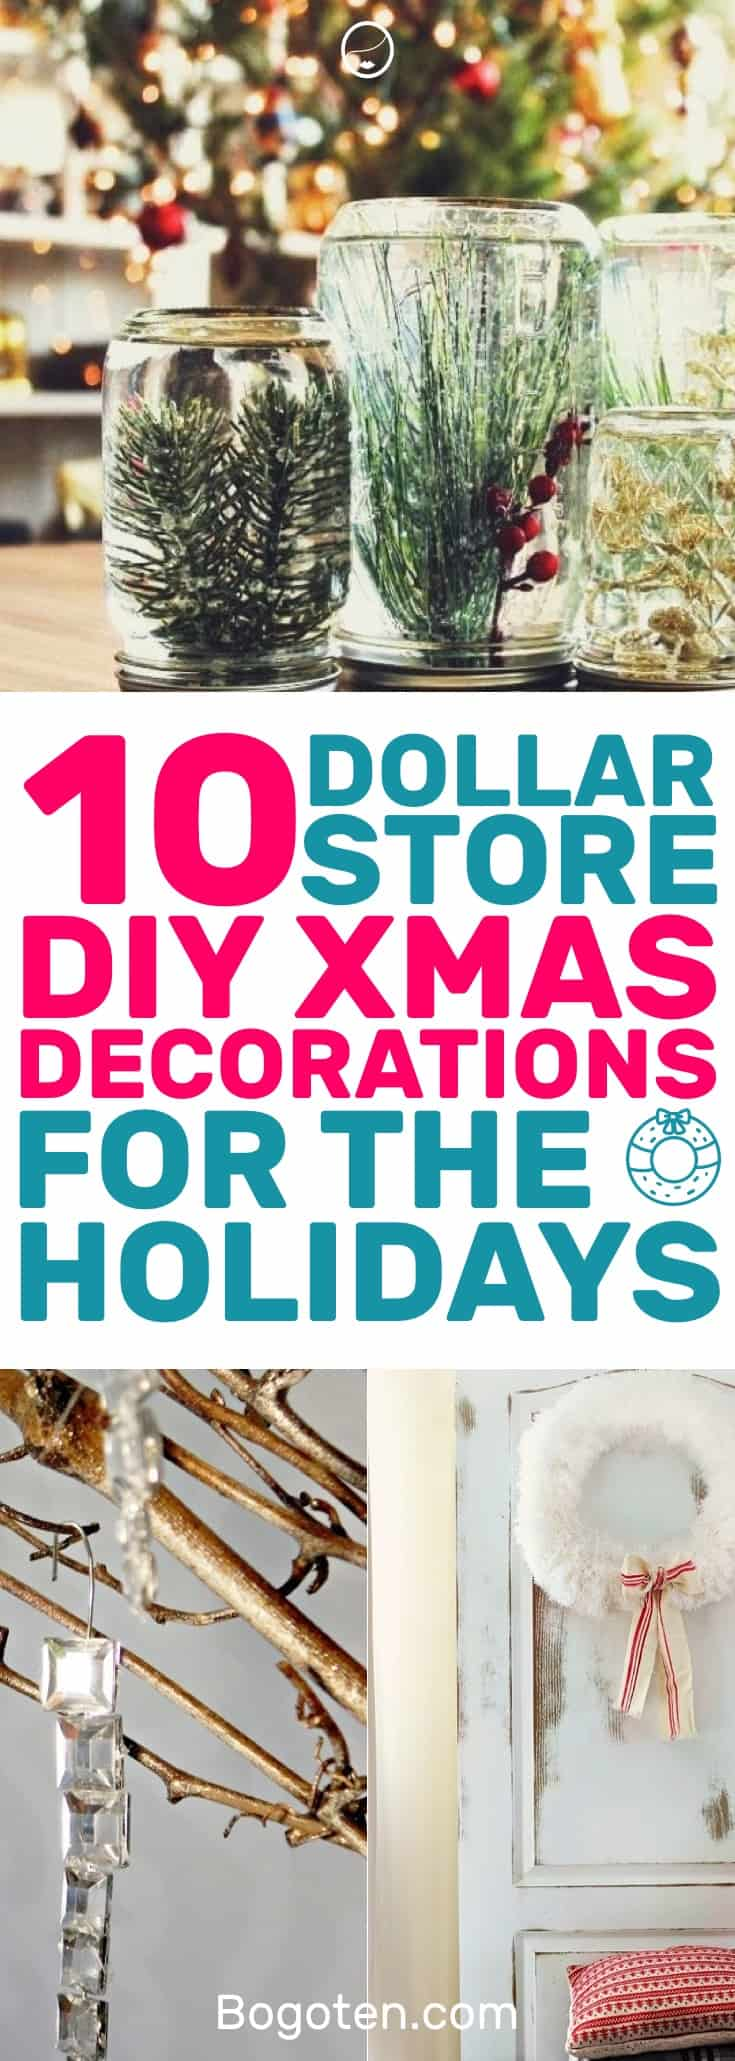 Who doesn't want to decorate their home for the holidays? These DIY Dollar Store home decor ideas will get you festive. I love them! #HomeDecorIdeas #ChristmasDecor